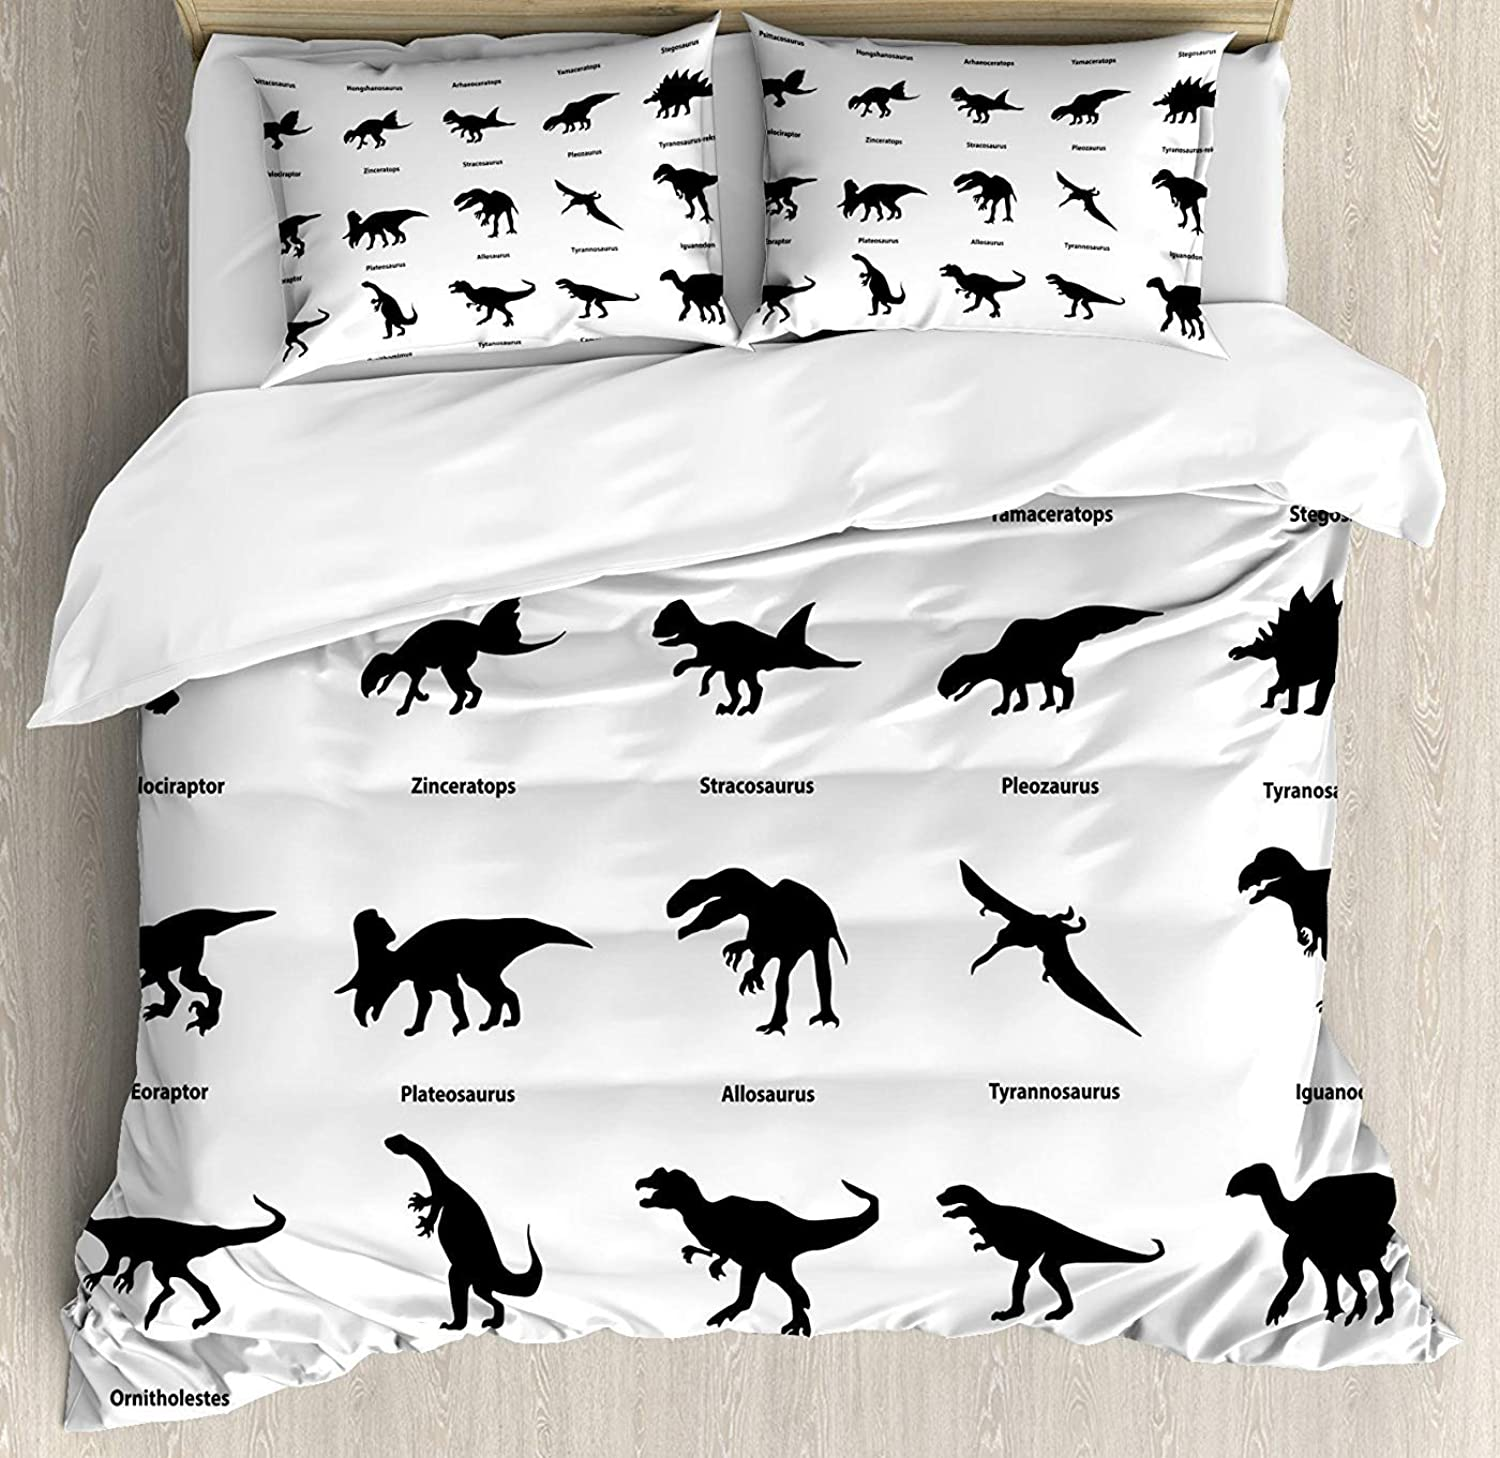 Fandim Fly Dinosaur Bedding Set Full Size, Collection of Different Dinosaurs Silhouettes with Their Names Evolution Wildlife,Comforter Cover Sets for All Season, Black White